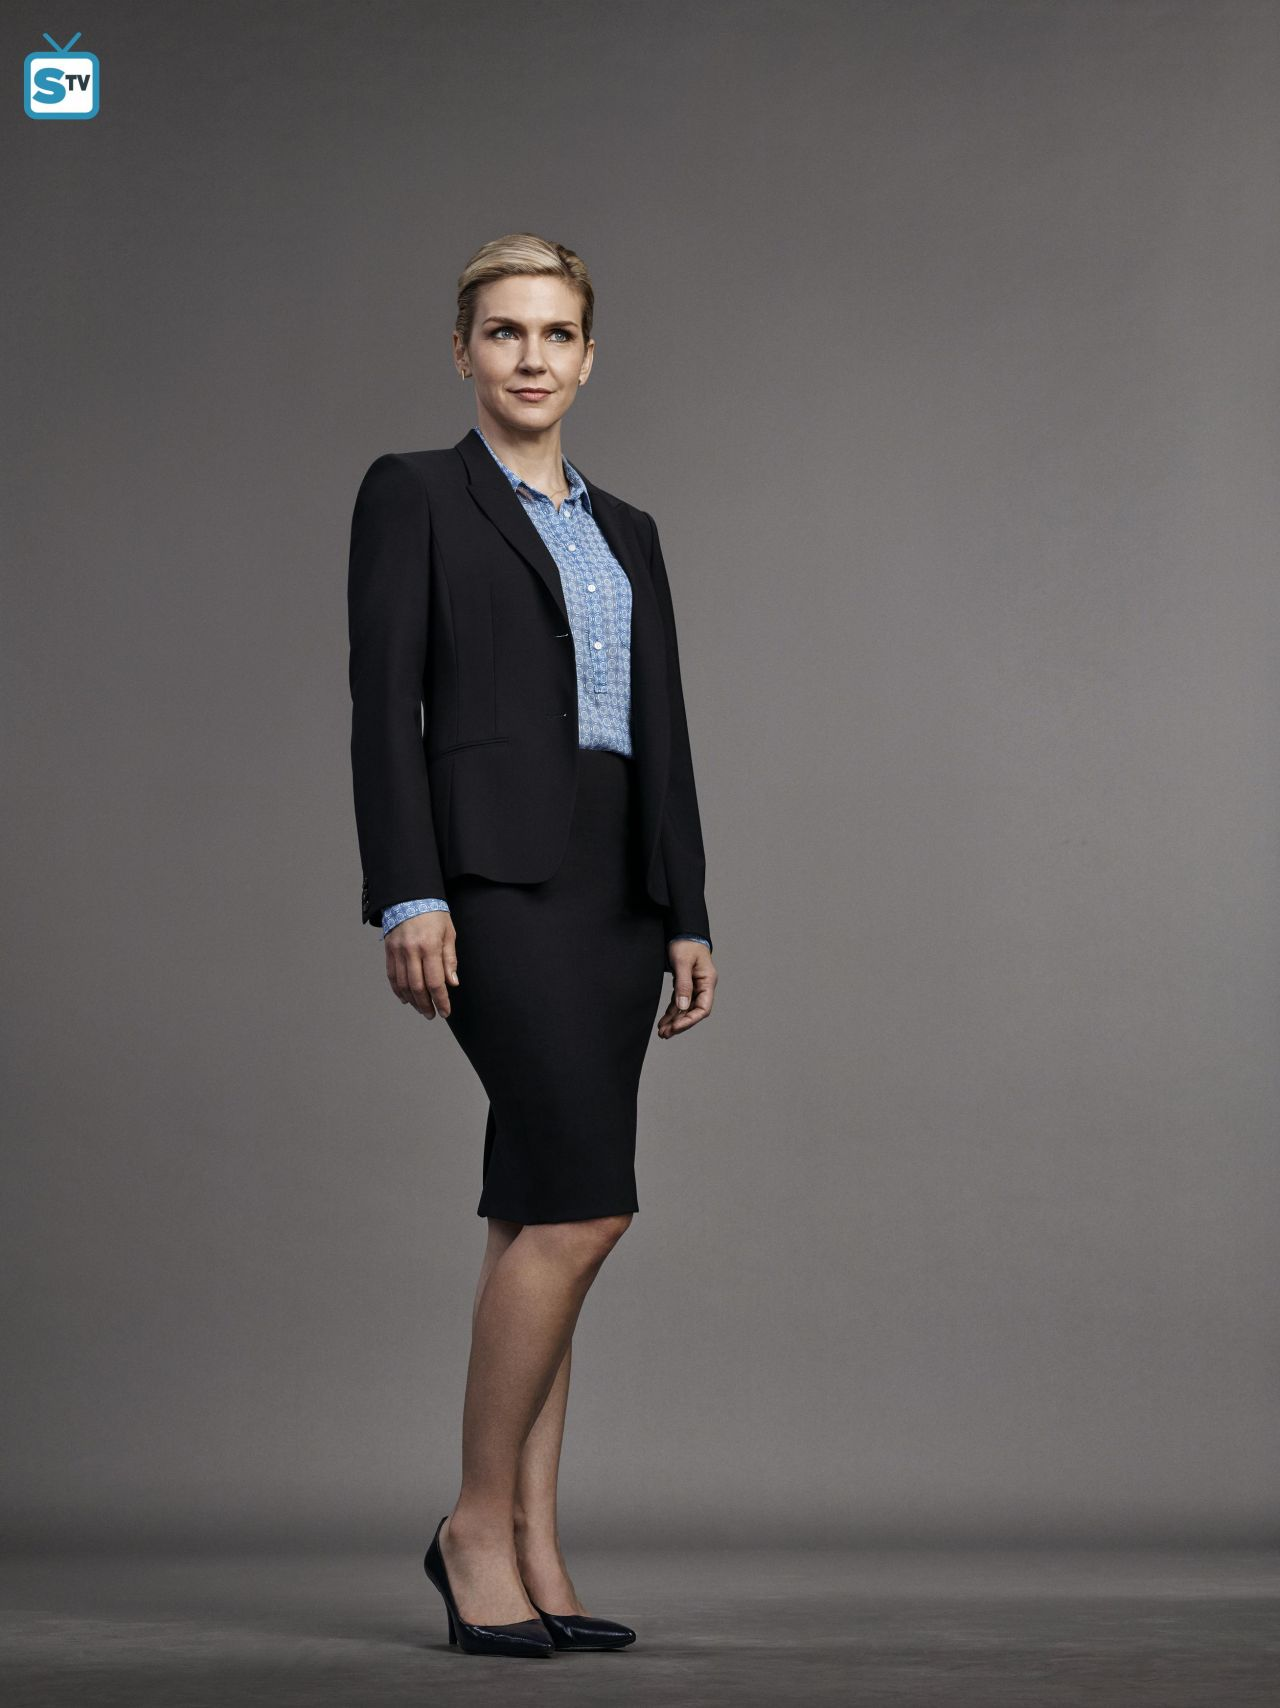 Rhea Seehorn Better Call Saul Season 1 Amp 2 Promotional Photos Amp Stills